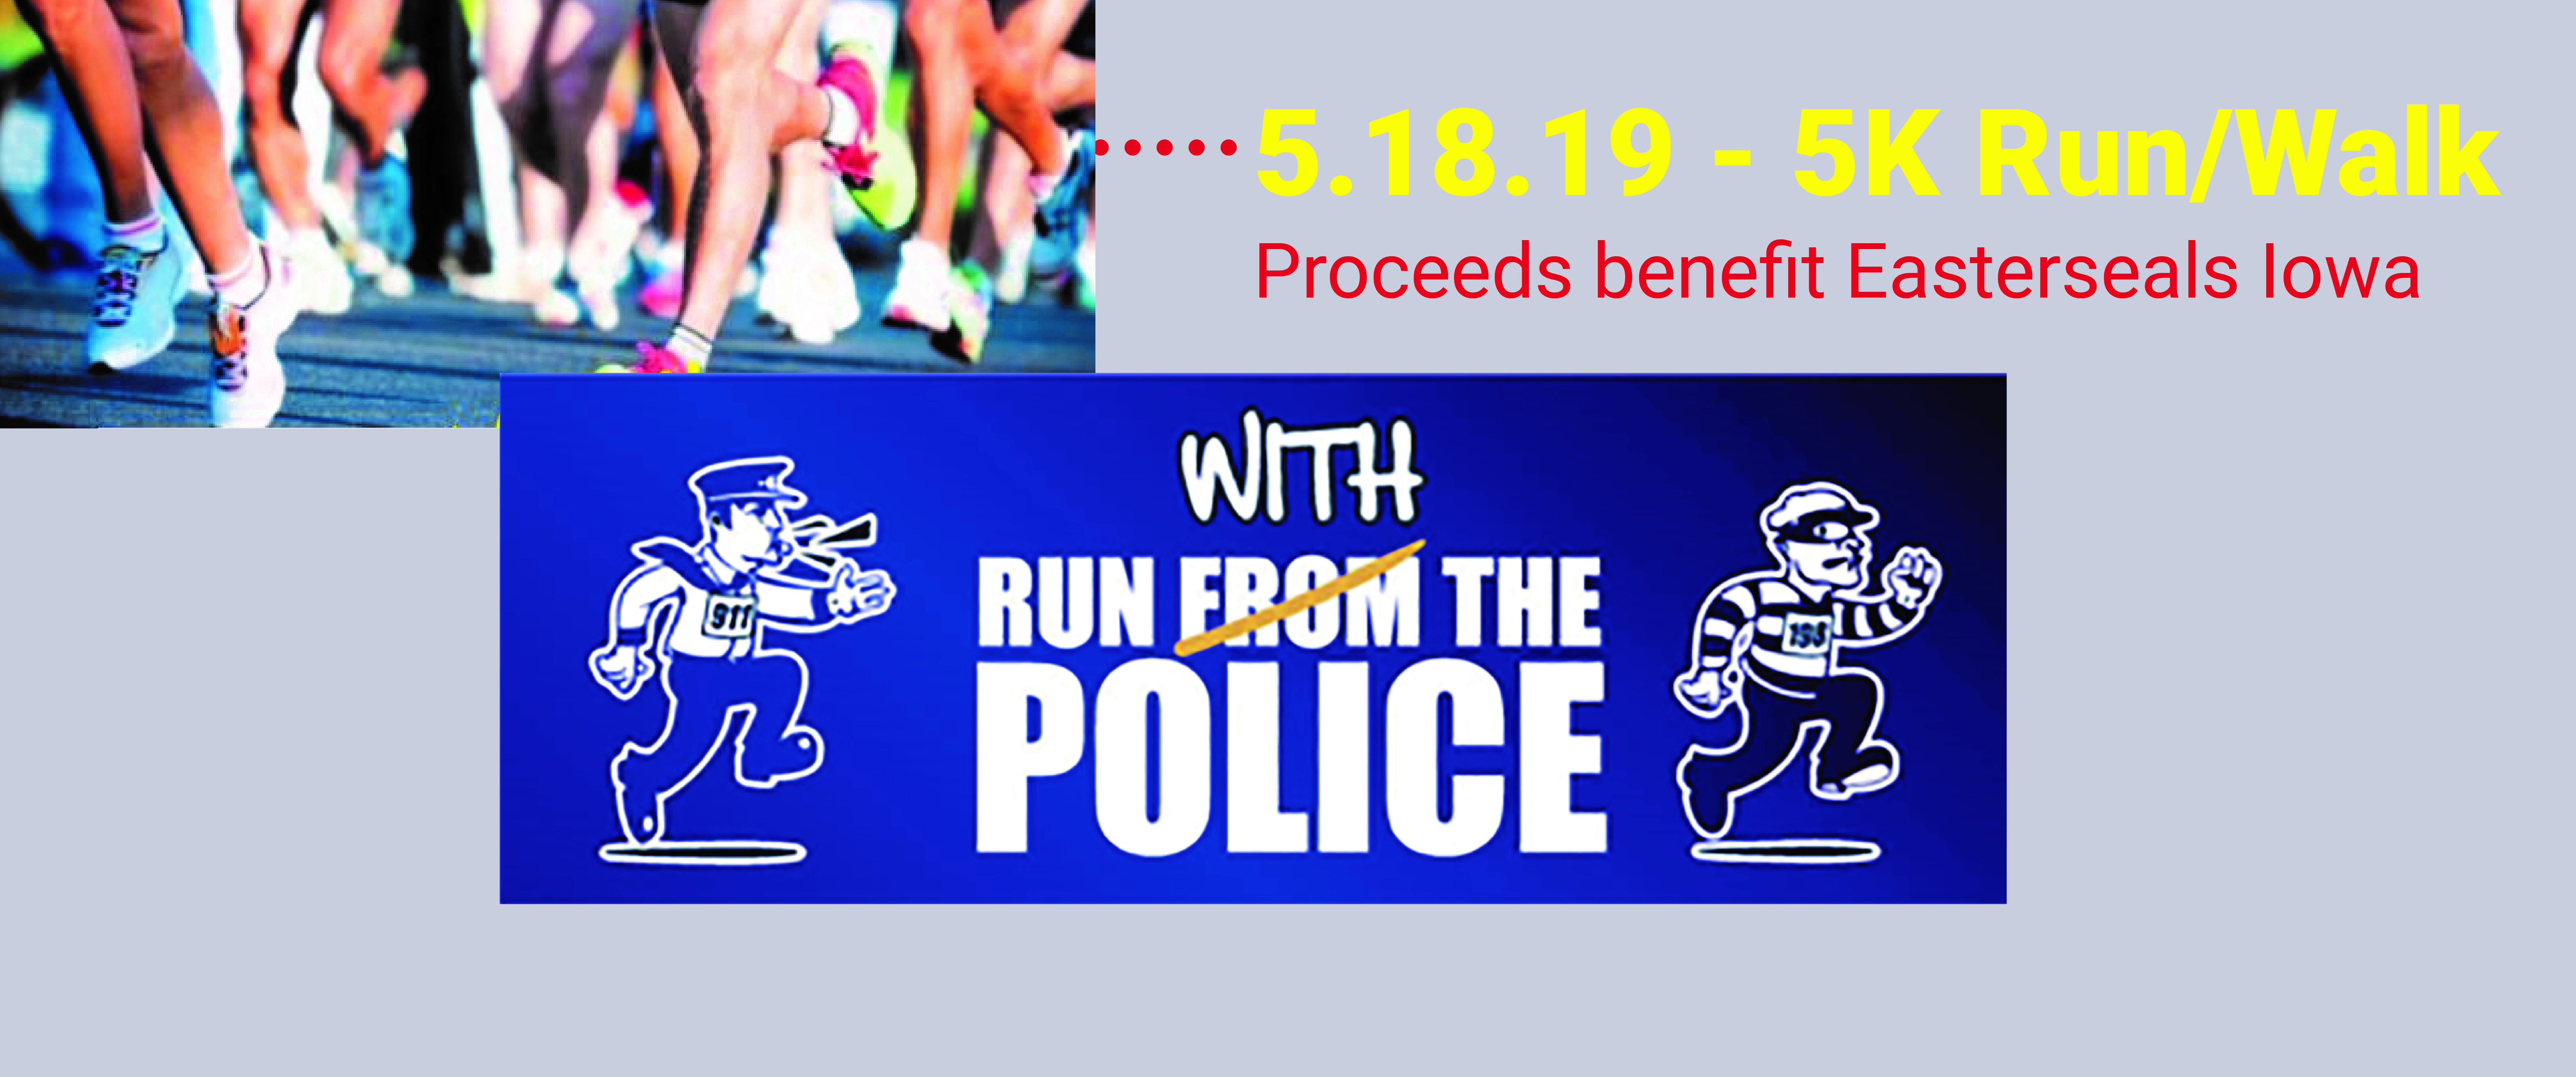 Run with Police